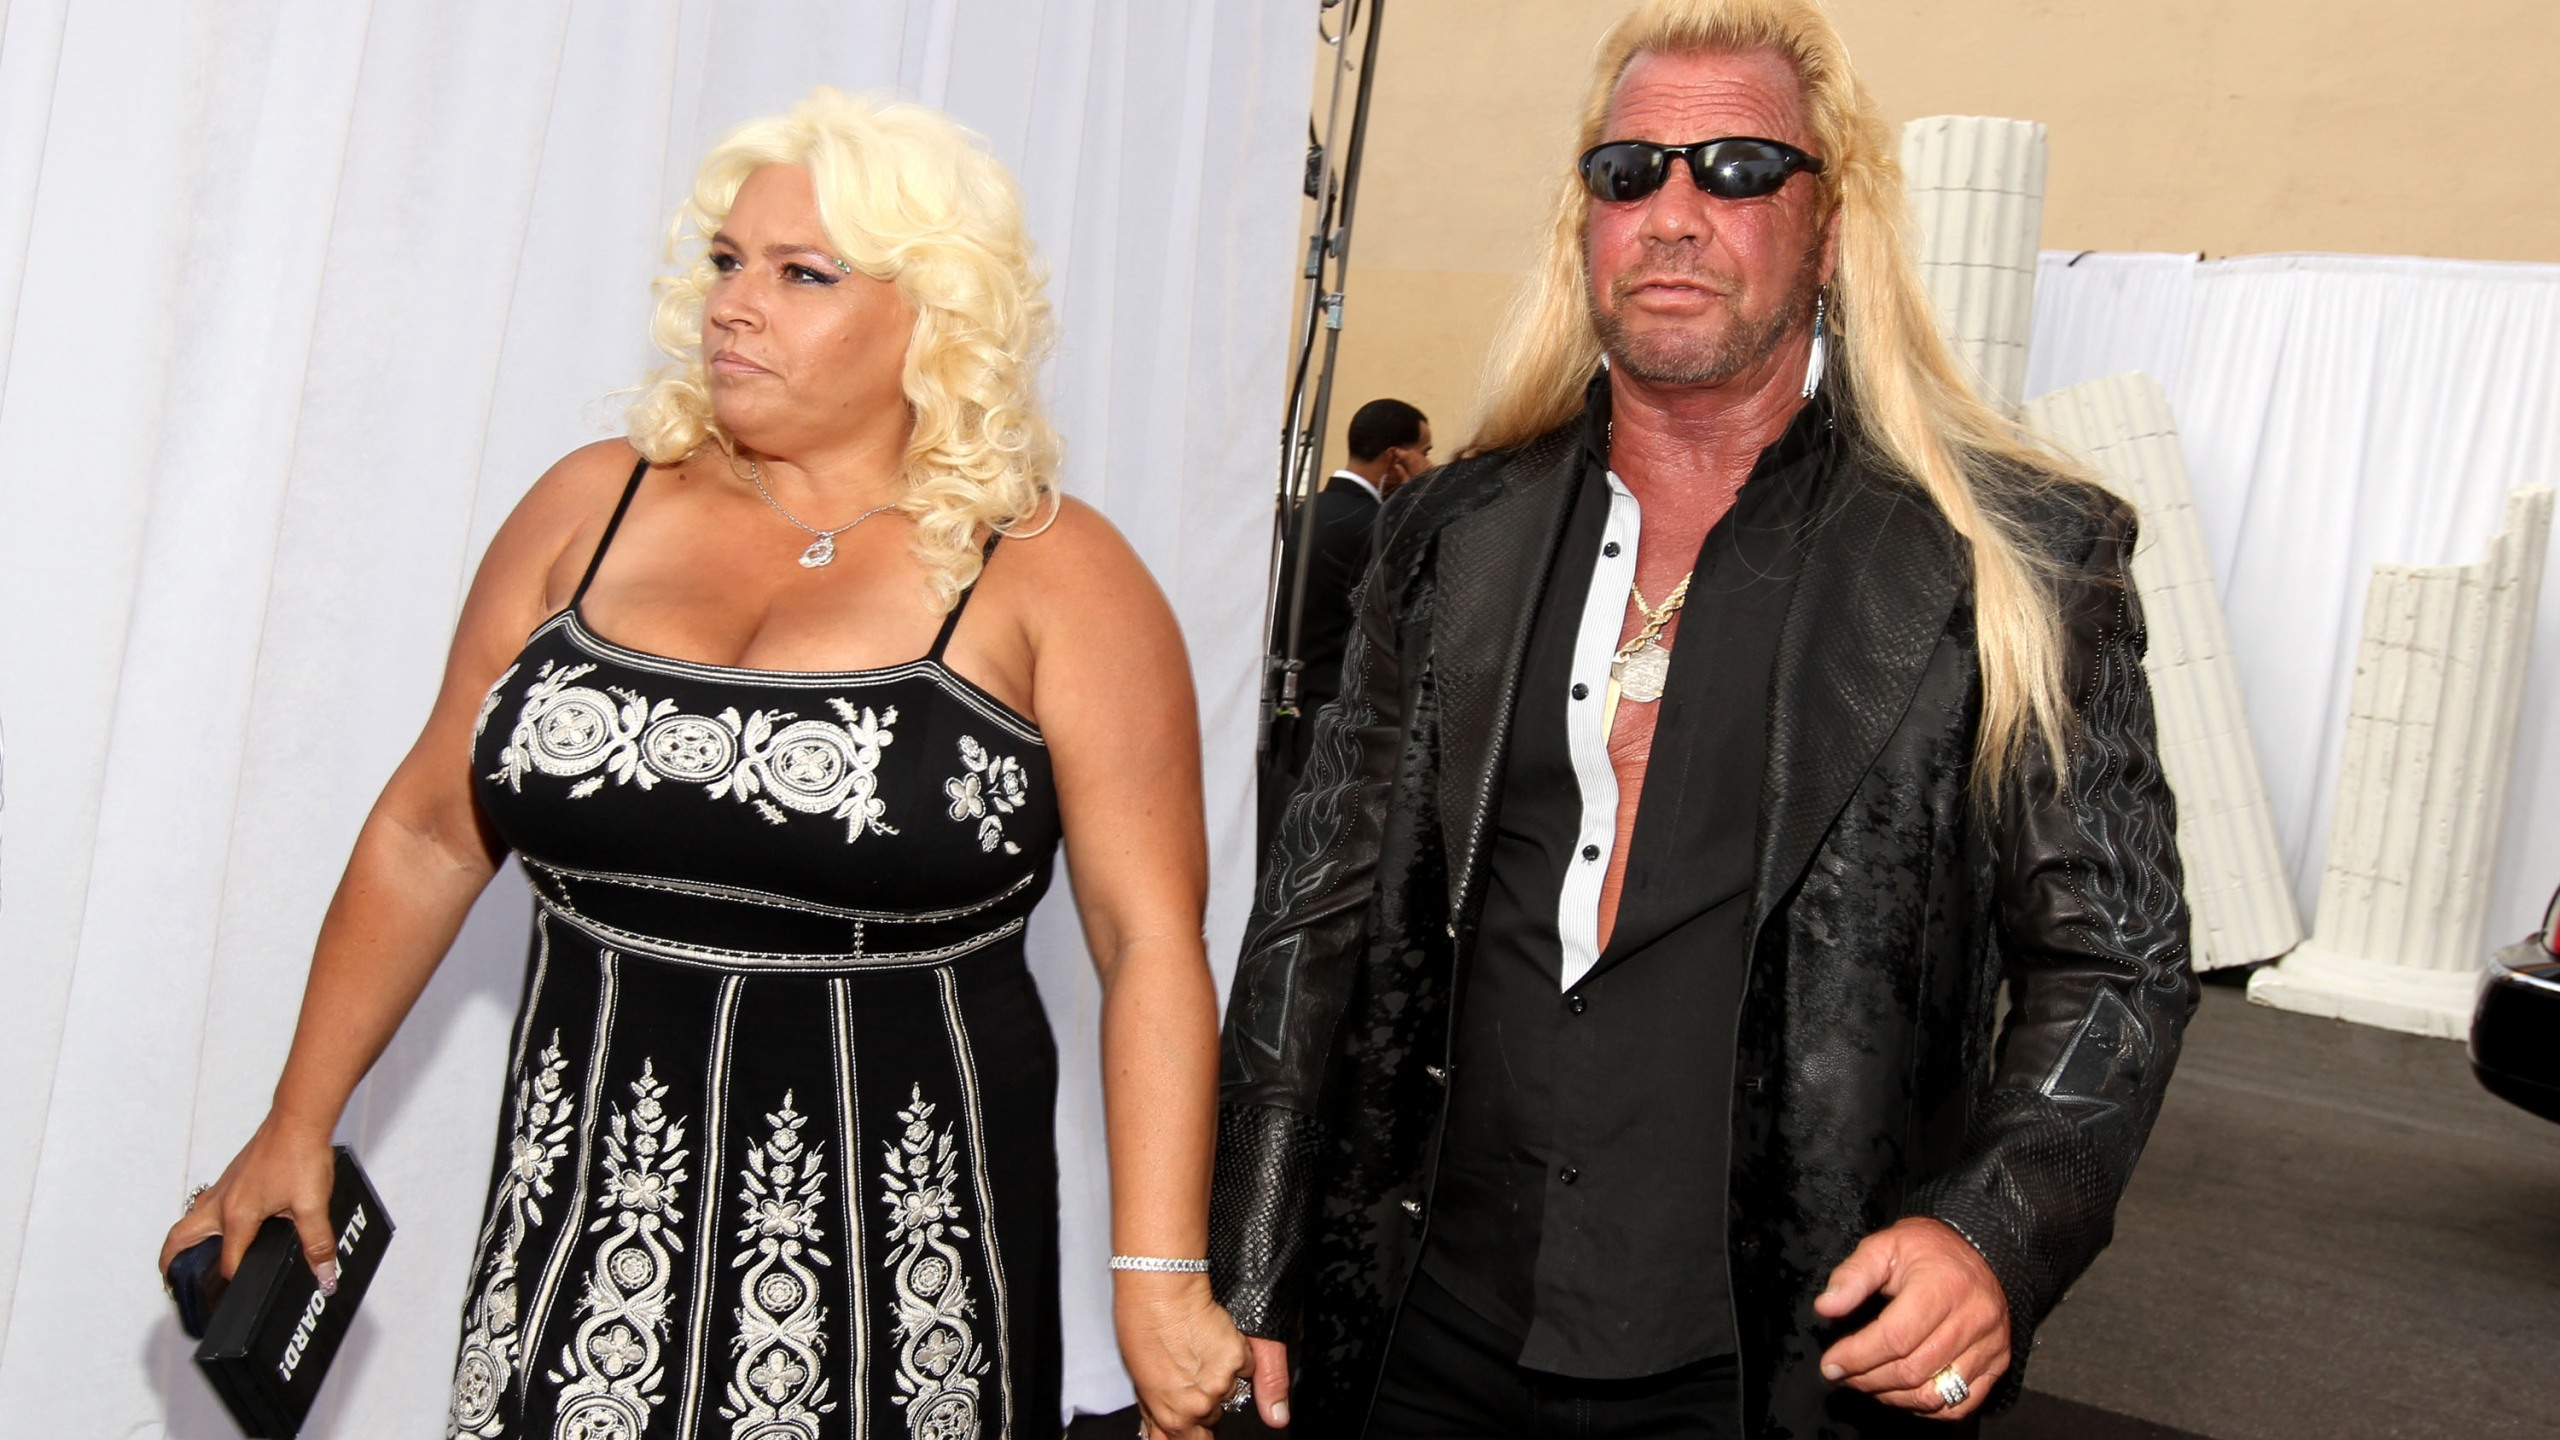 Dog The Bounty Hunter Co Star Beth Chapman Dies At 51 Krqe News 13